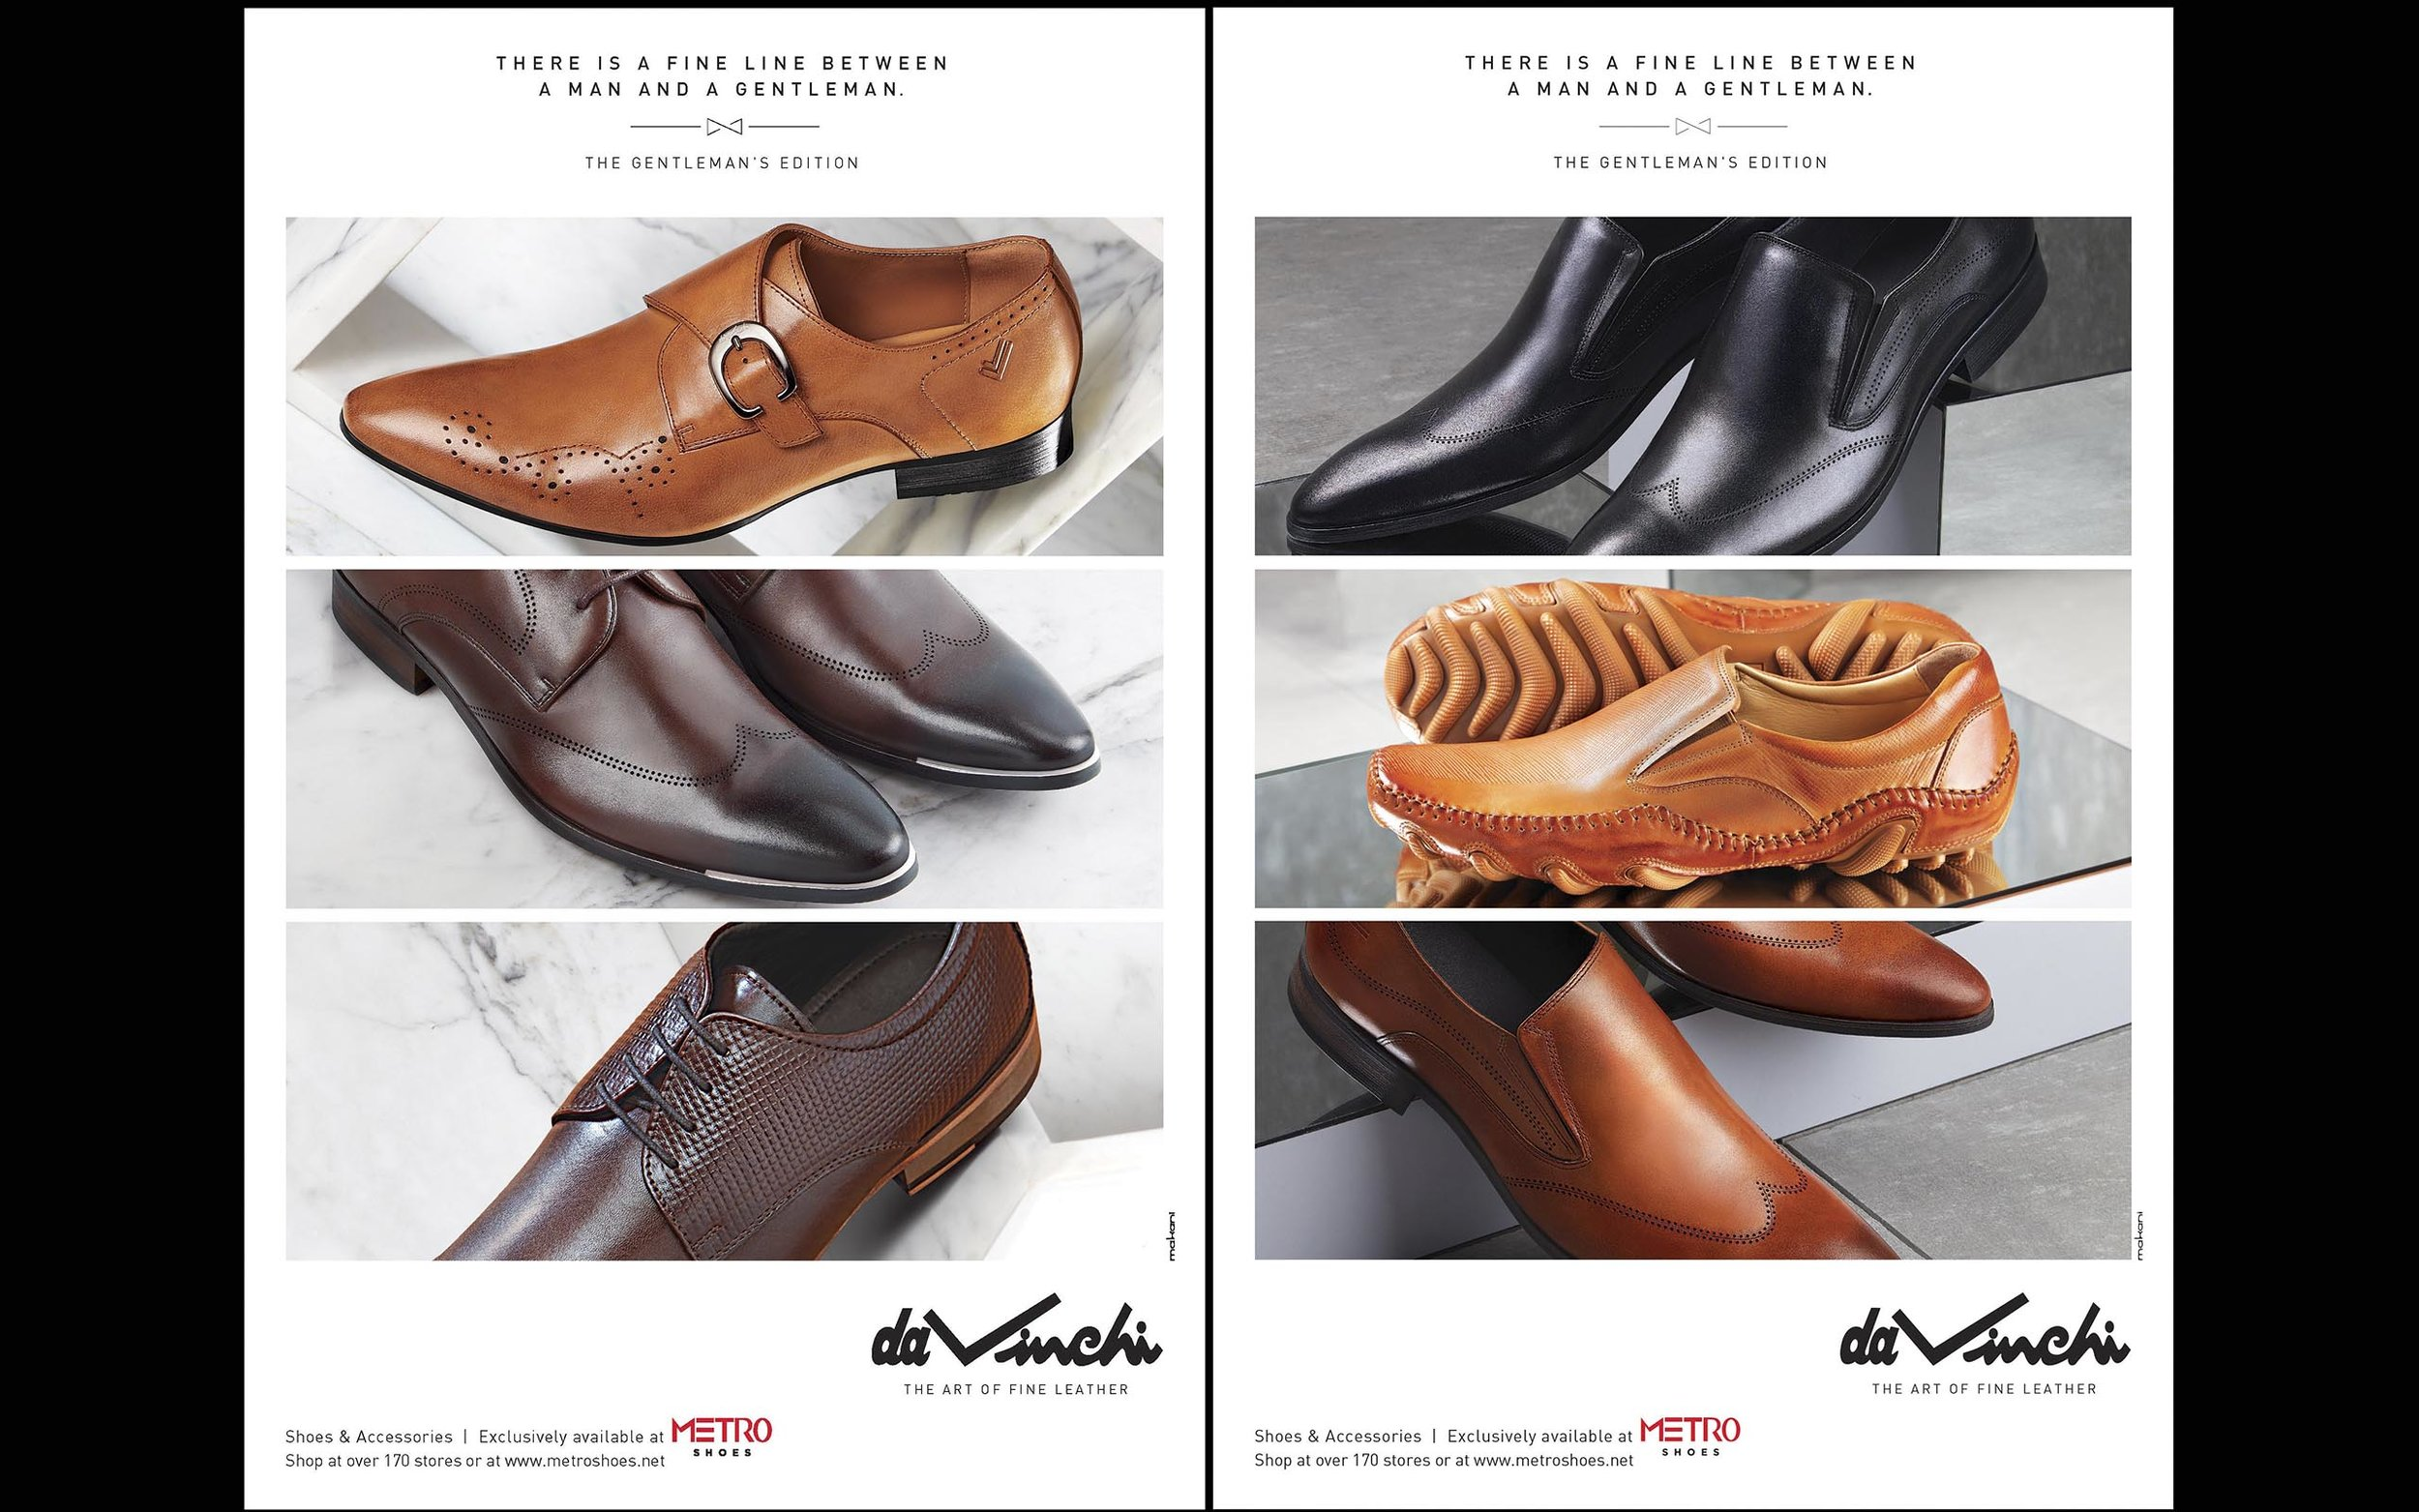 DaVinchi shoes by Metro